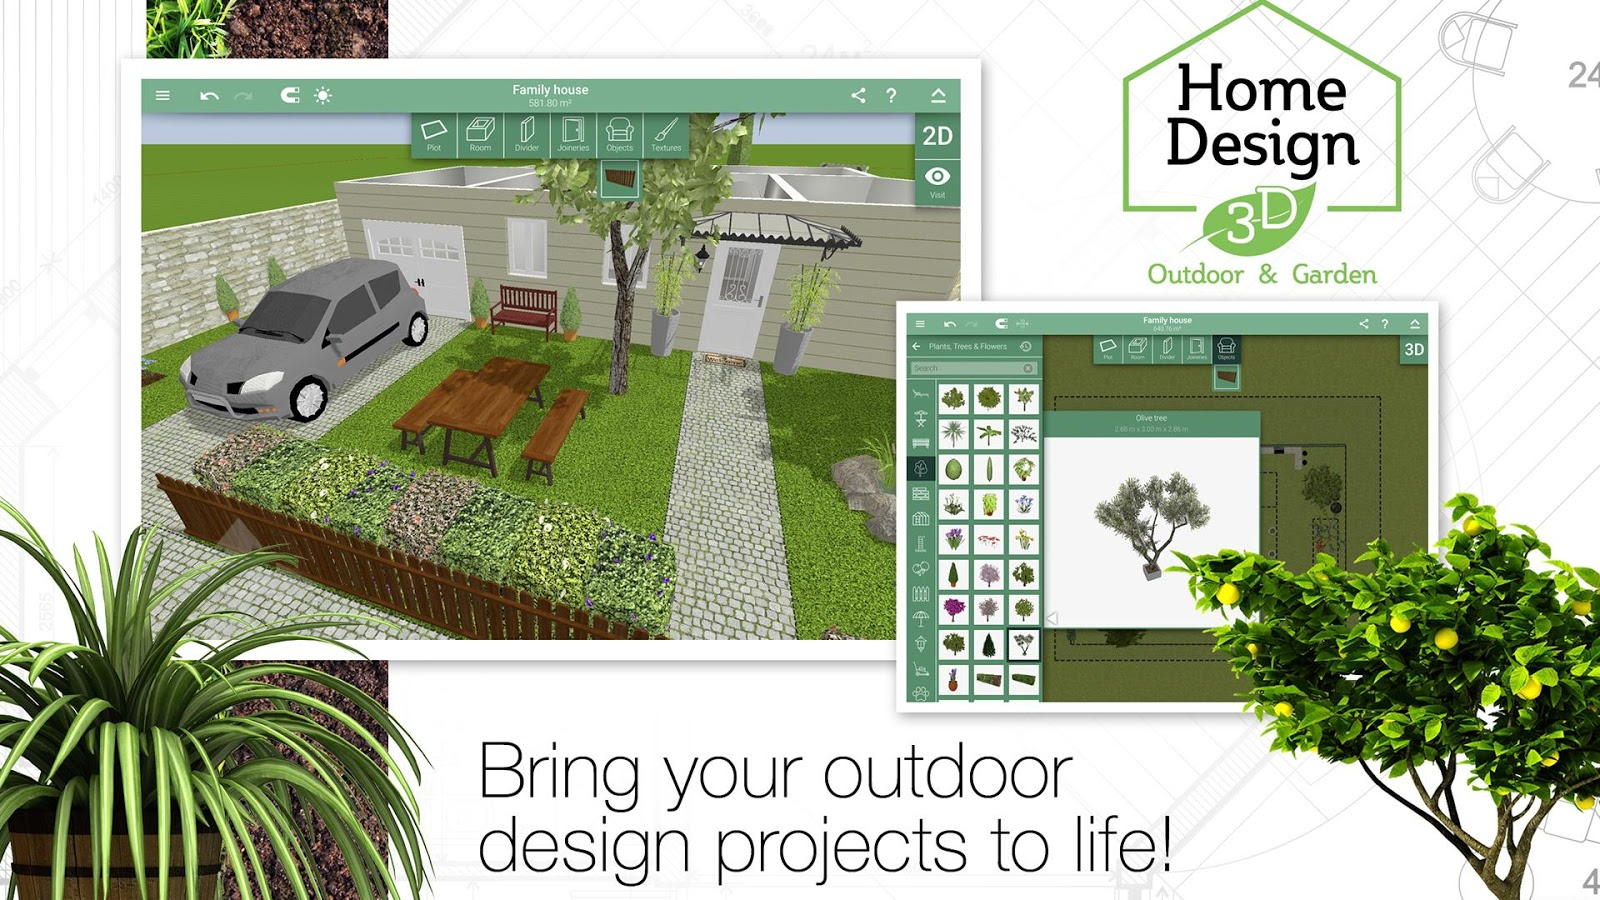 Home design 3d outdoor garden android apps on google play for Outside garden design